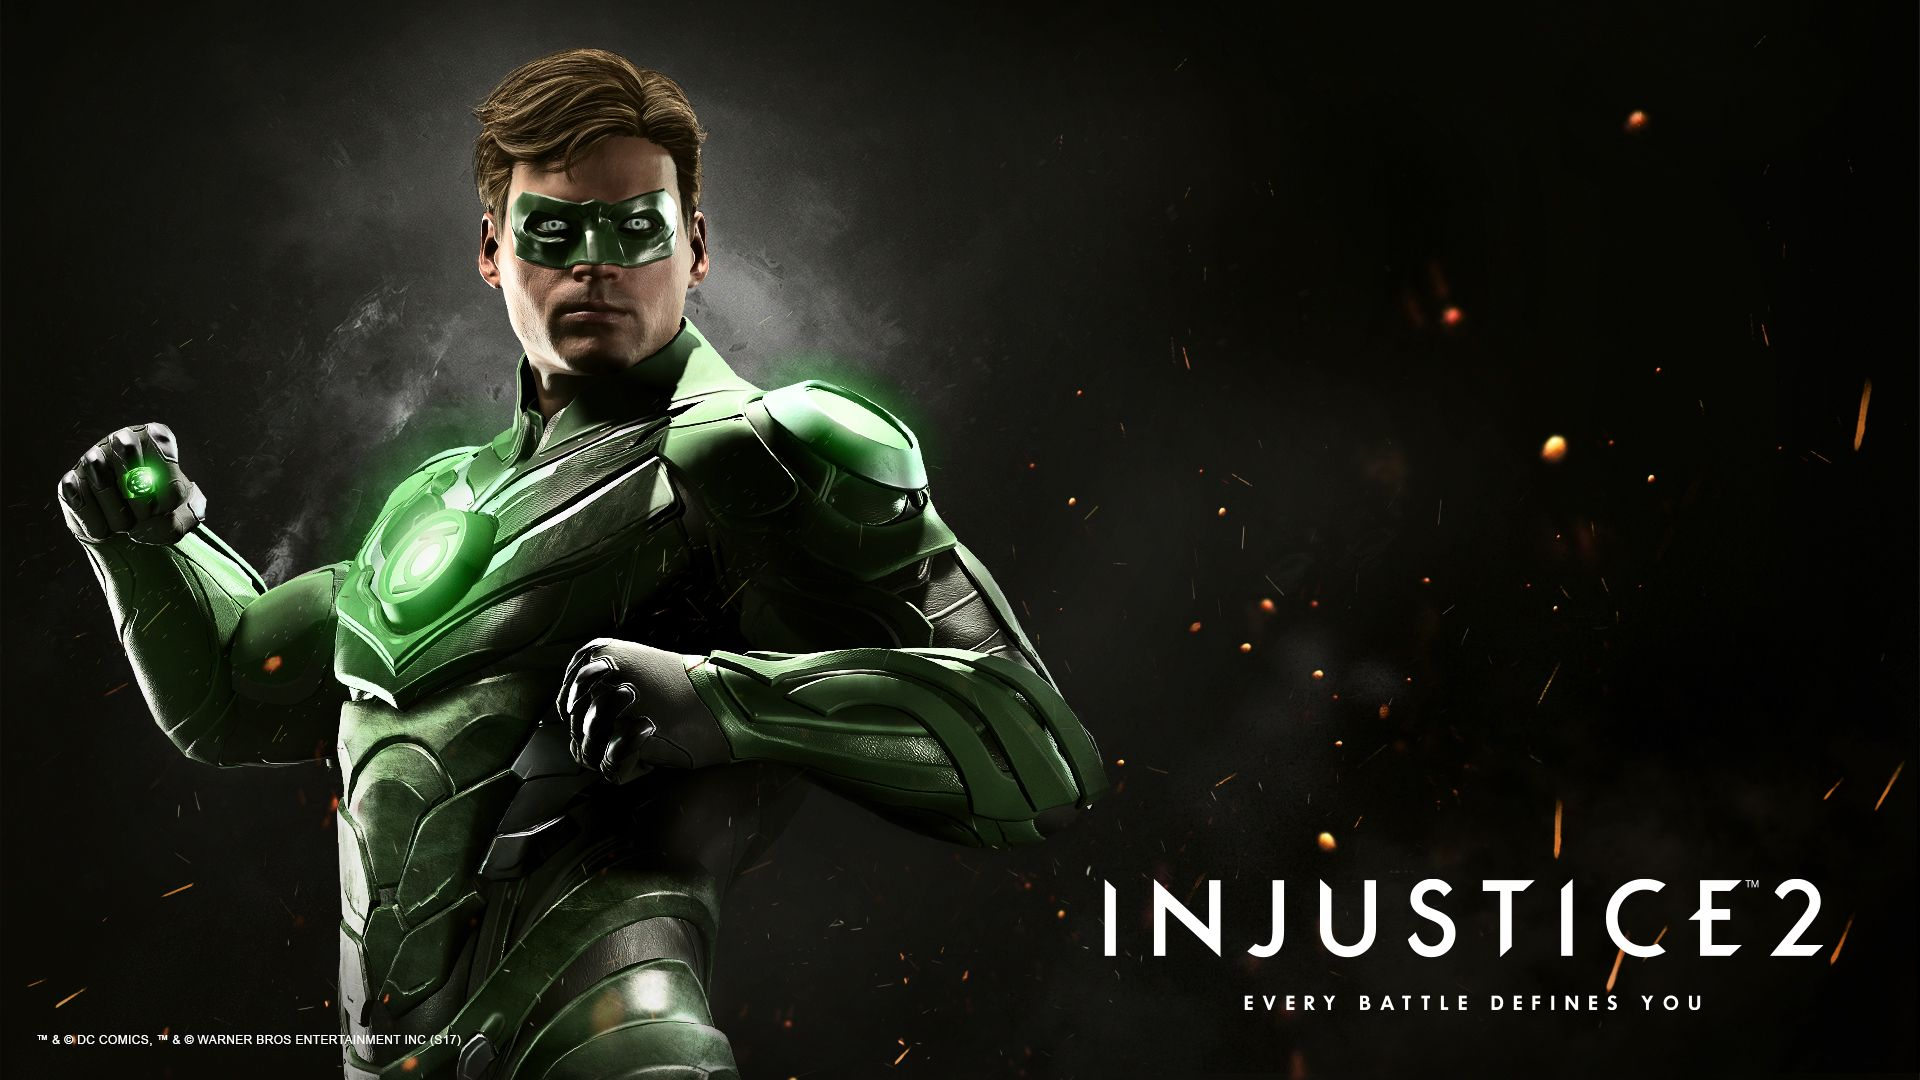 Image currently unavailable. Go to www.hack.generatorgame.com and choose Injustice: Gods Among Us image, you will be redirect to Injustice: Gods Among Us Generator site.